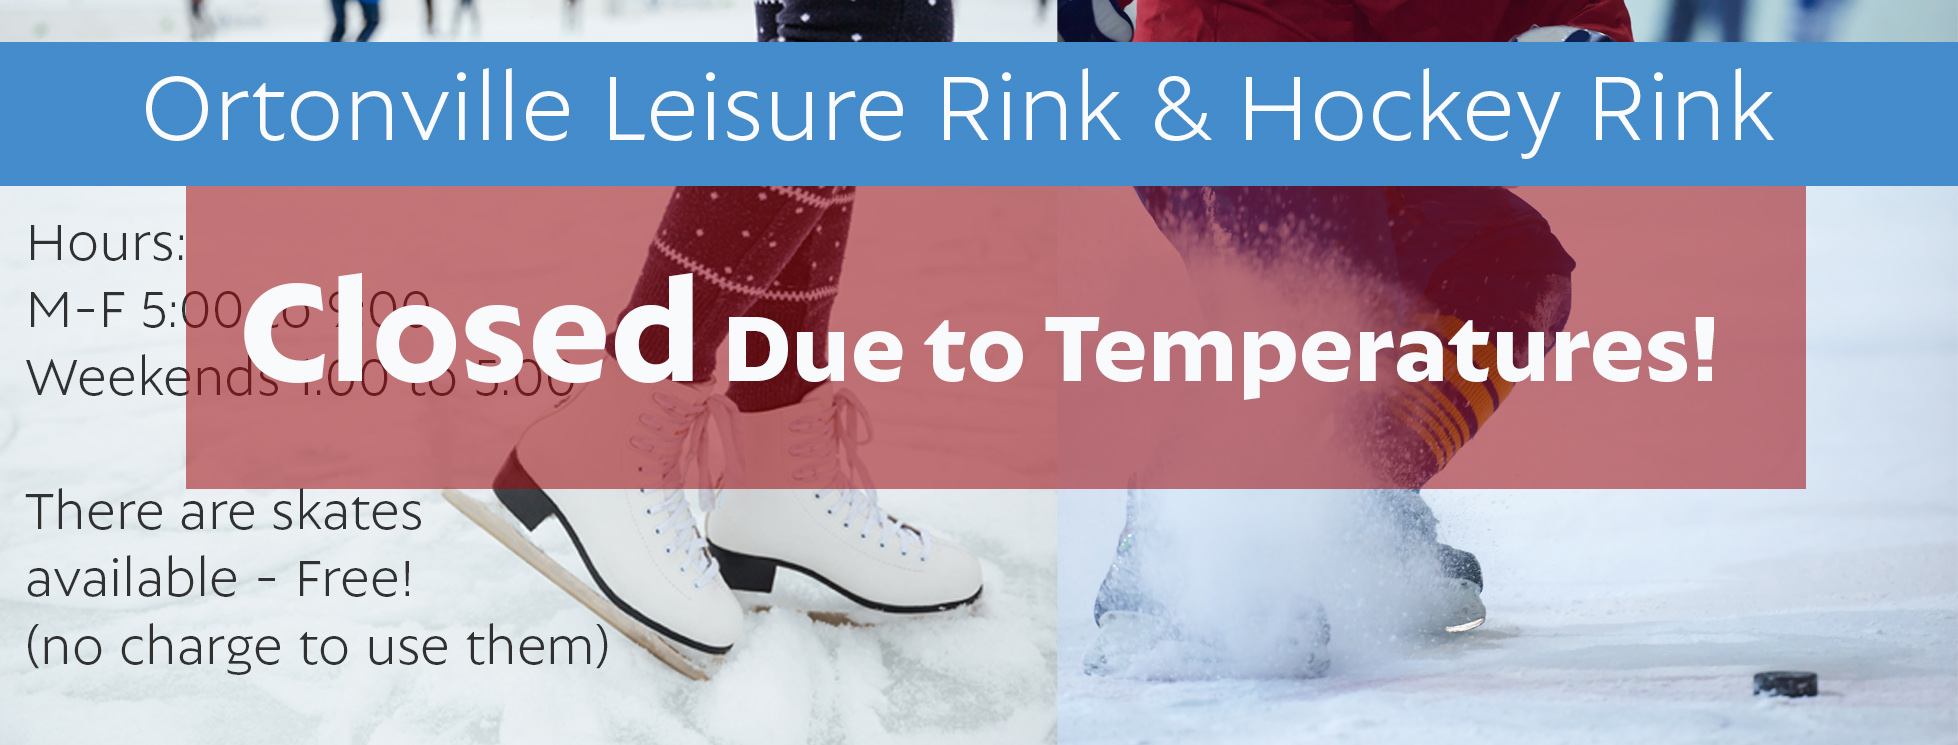 UPDATE 2/4/2019, Ice Skating Park CLOSED